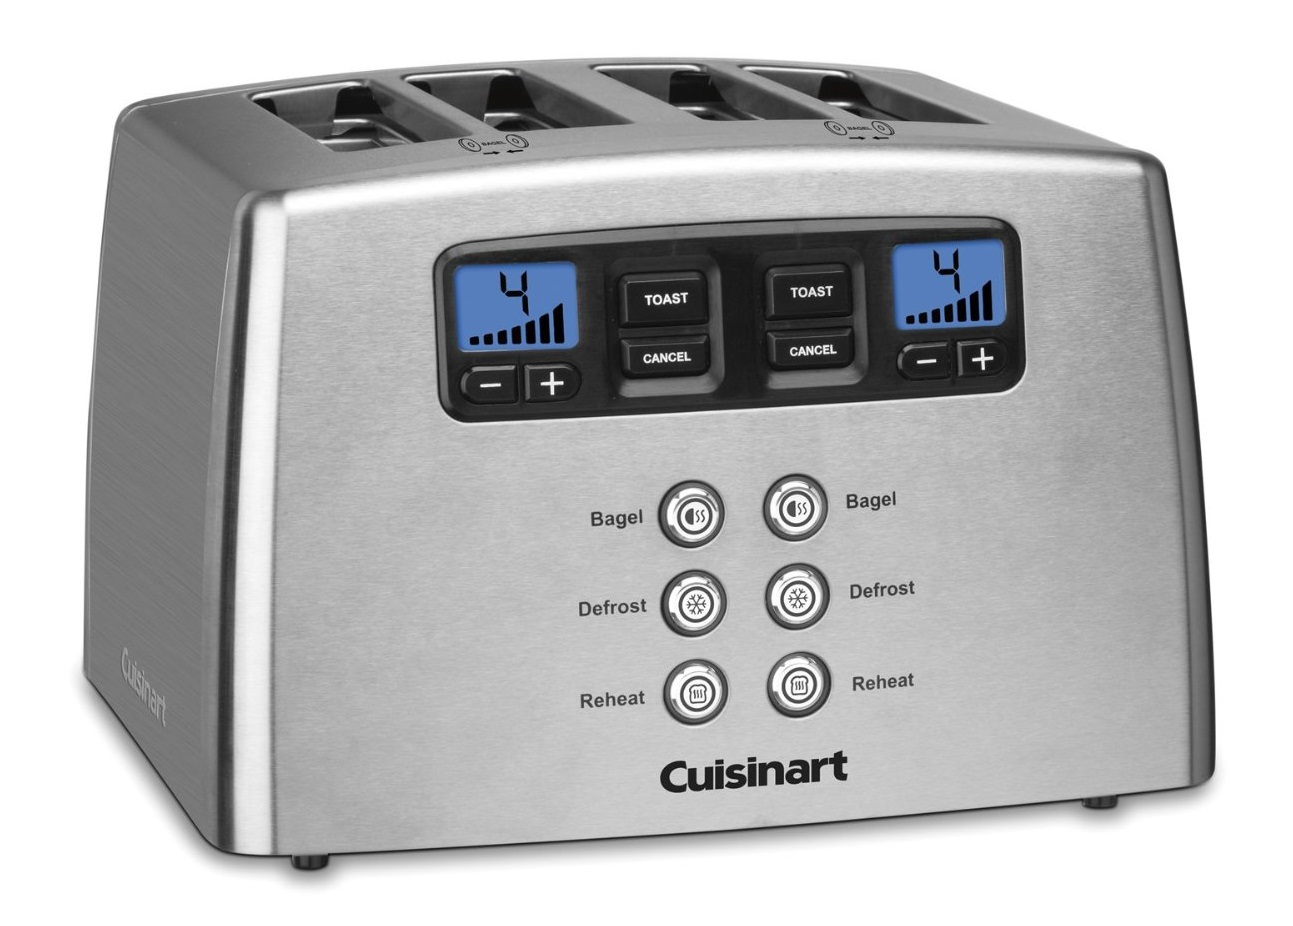 Cuisinart CPT 440 Toaster Review What Are The plaints